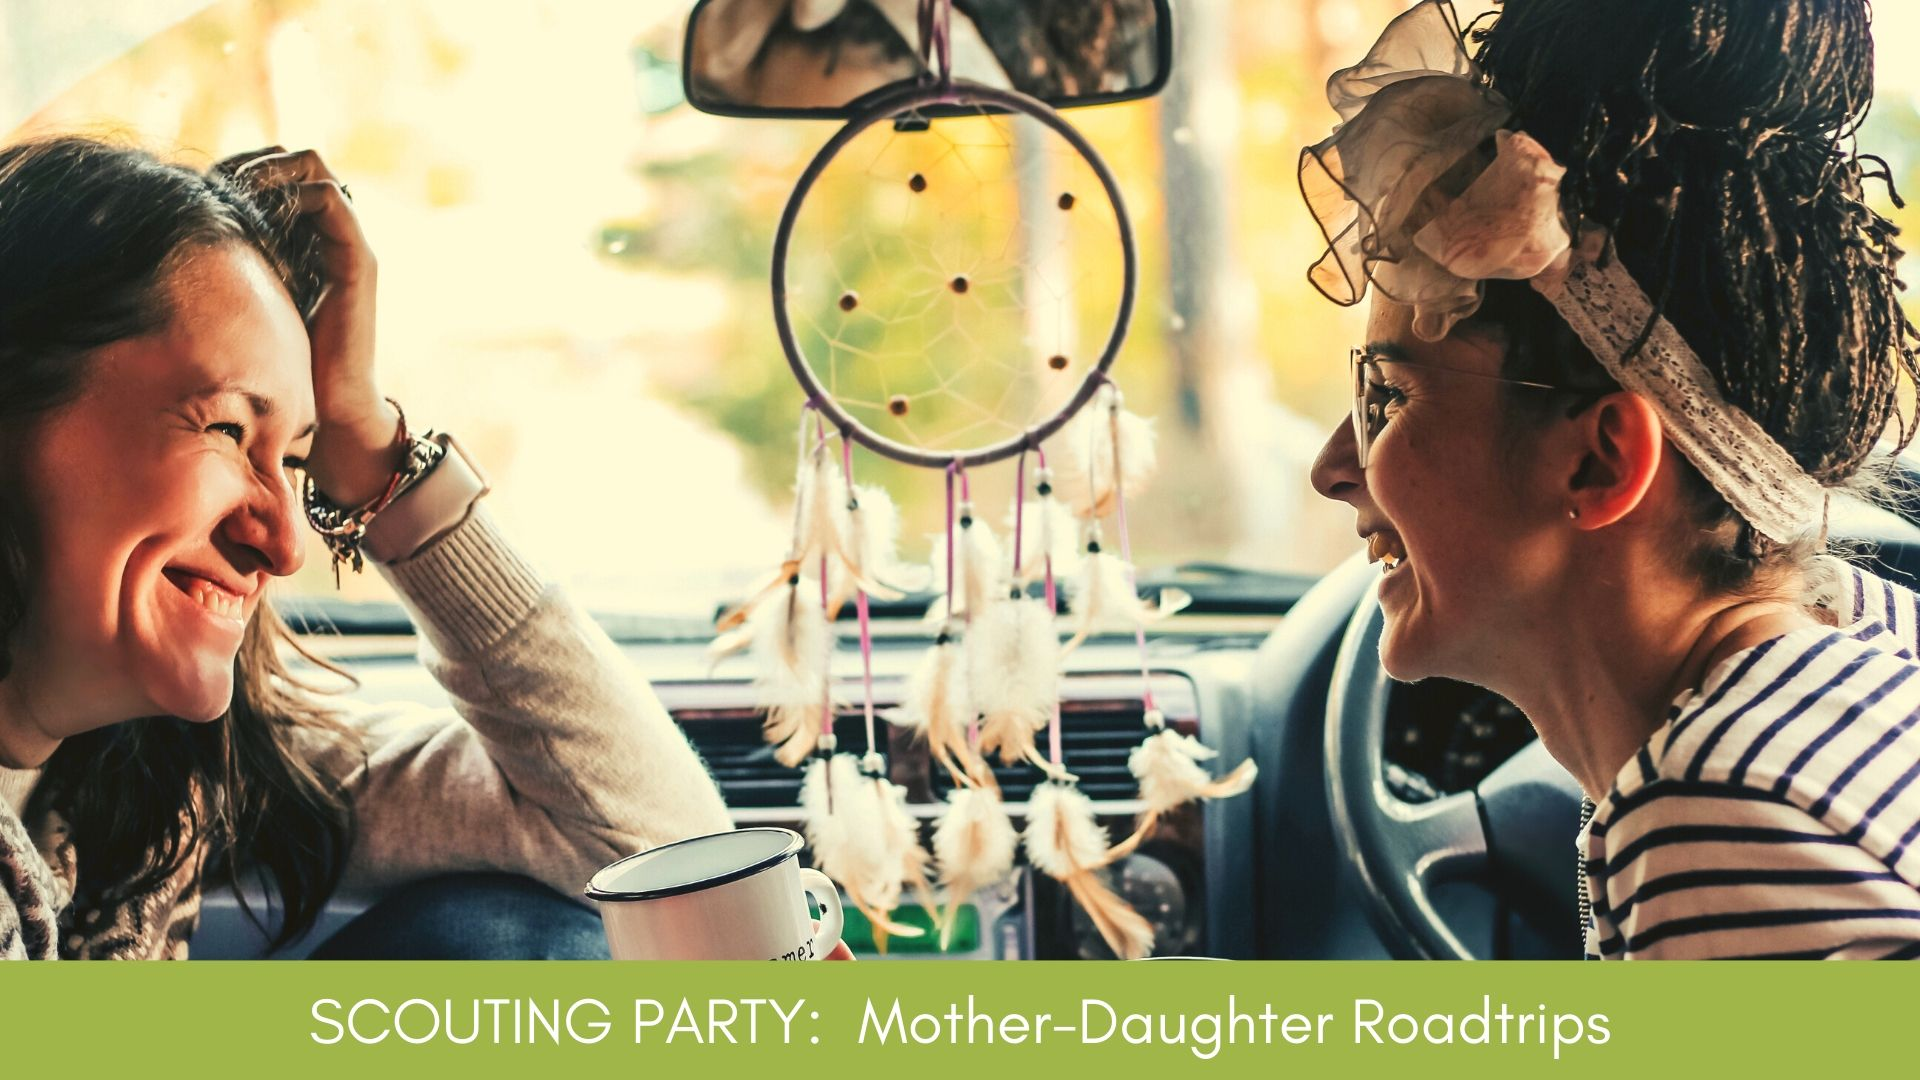 SCOUTING PARTY: Mother-Daughter Roadtrips